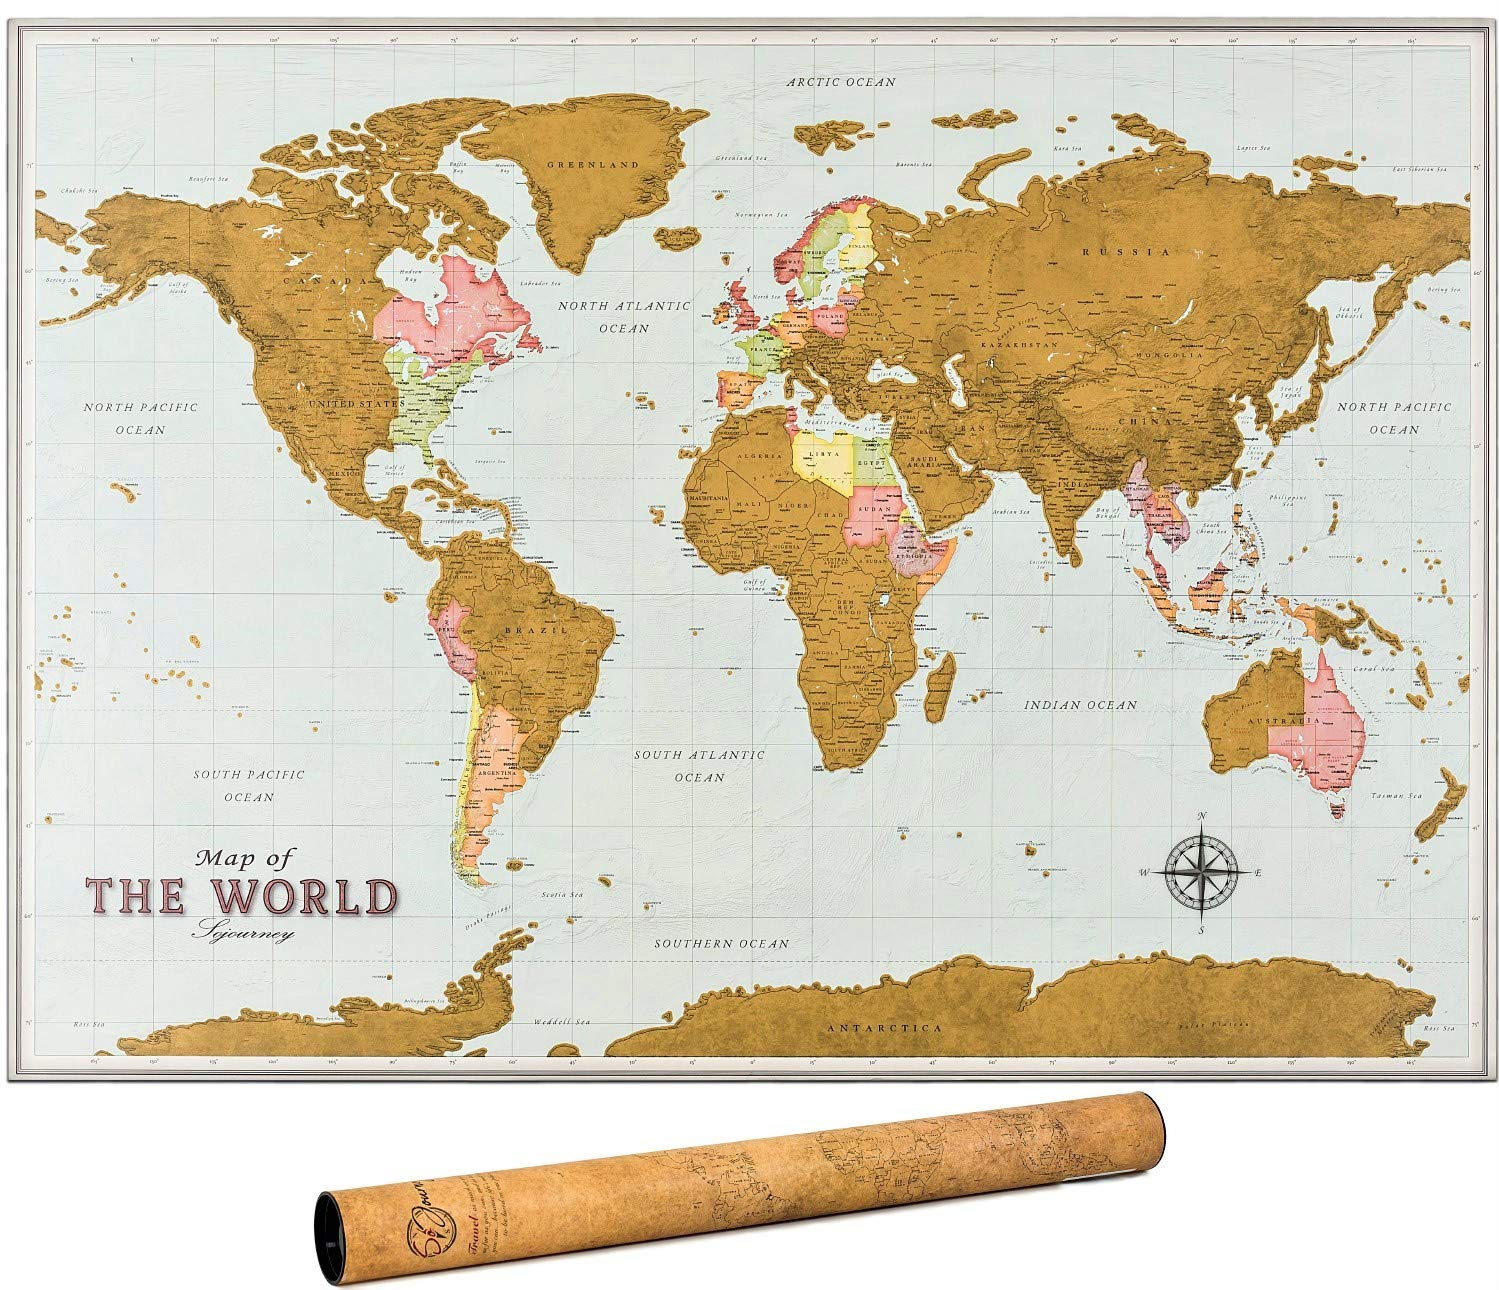 World Map United States Of America.Scratch Off Map Of The World Premium Edition World Scratch Off Map With Outlined Canadian And Us States Xl Large Size 33 X 24 World Map Scratch